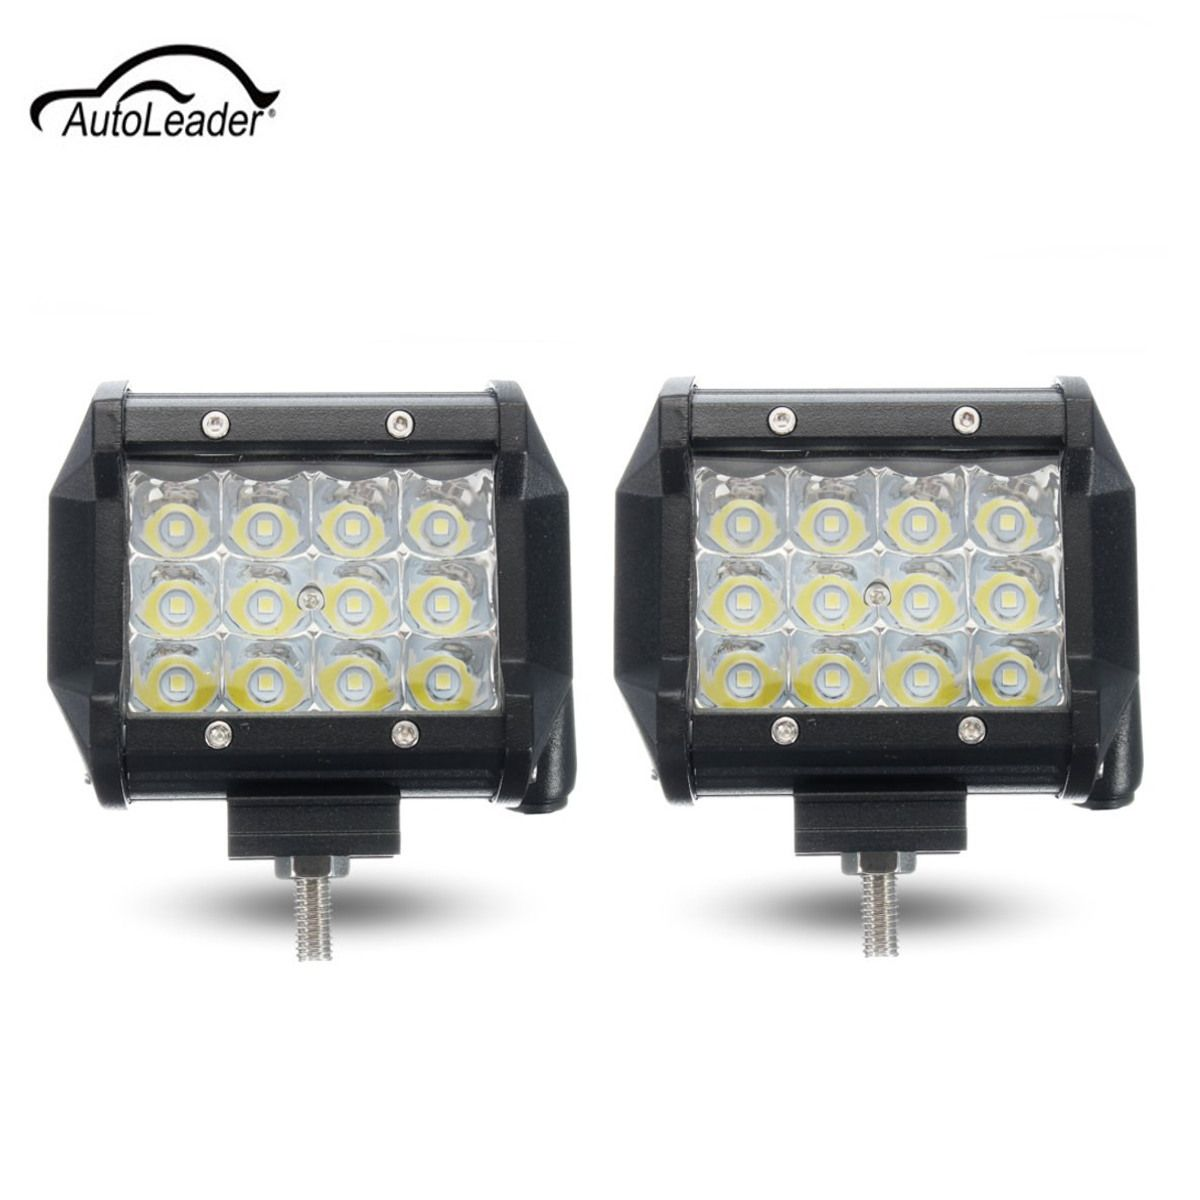 72W 5 Inch LED Car Day Light Spot Light Lamp Bright Light Work Assembly for Motorcycle Driving Offroad Boat Car Tractor Truck